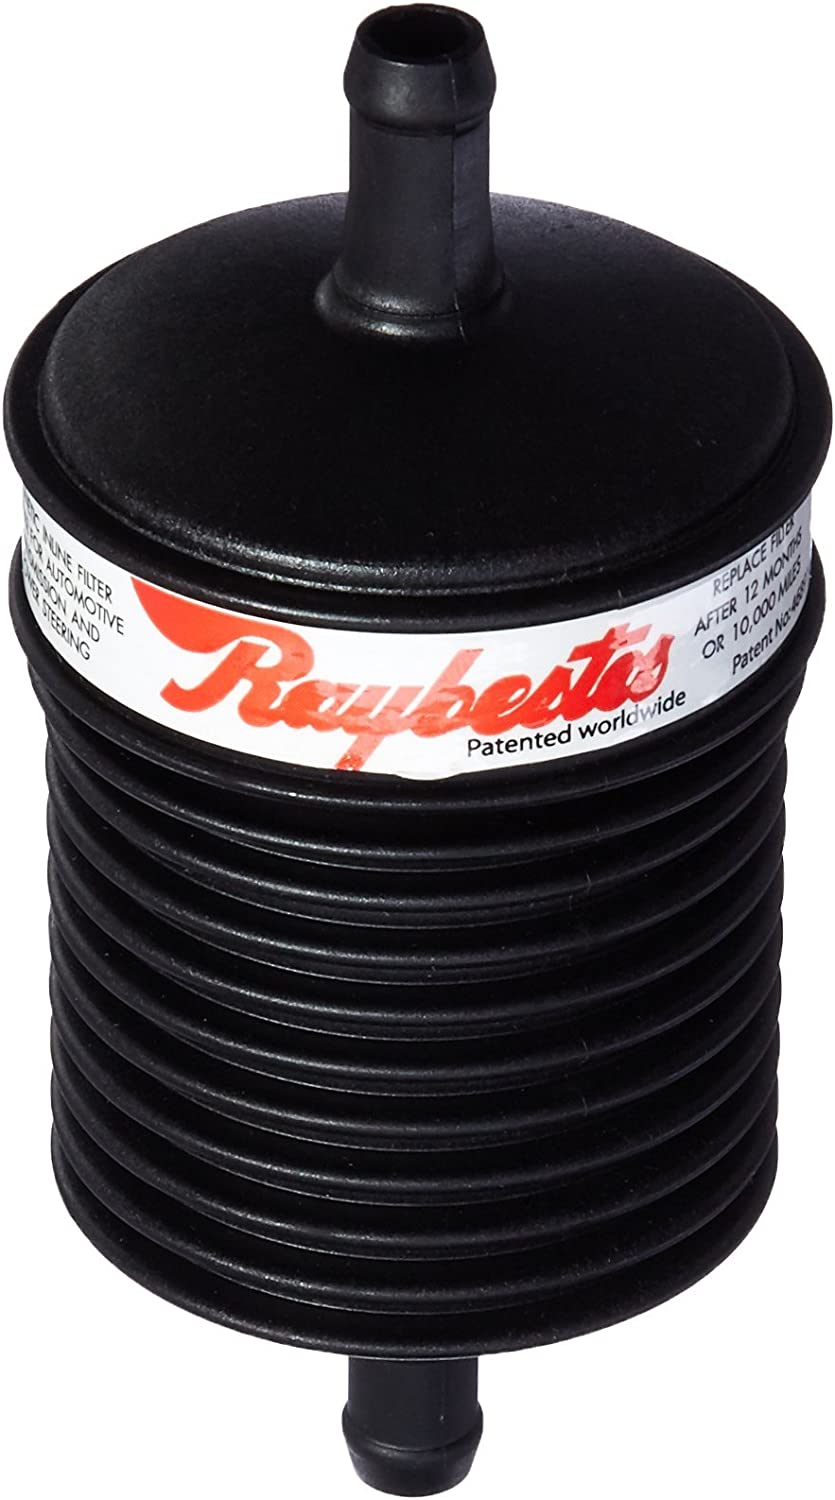 Raybestos Powertrain Inline Magnetic Automatic Transmission Filter 3//8 was suppressed